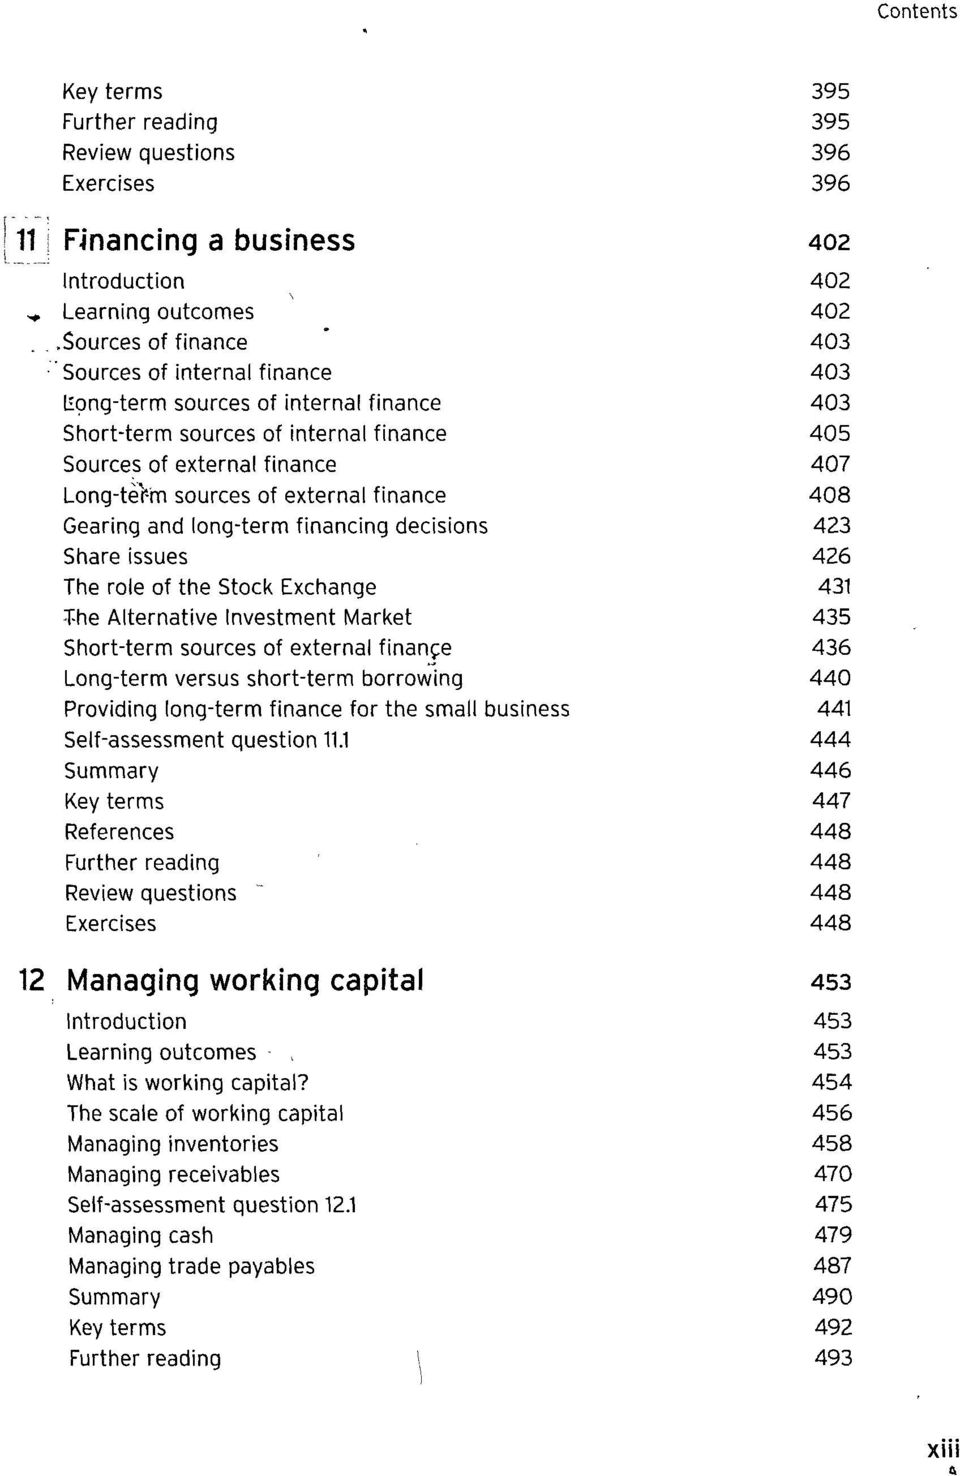 external finance 408 Gearing and long-term financing decisions 423 Share issues 426 The role of the Stock Exchange 431 T-he Alternative Investment Market 435 Short-term sources of external finance